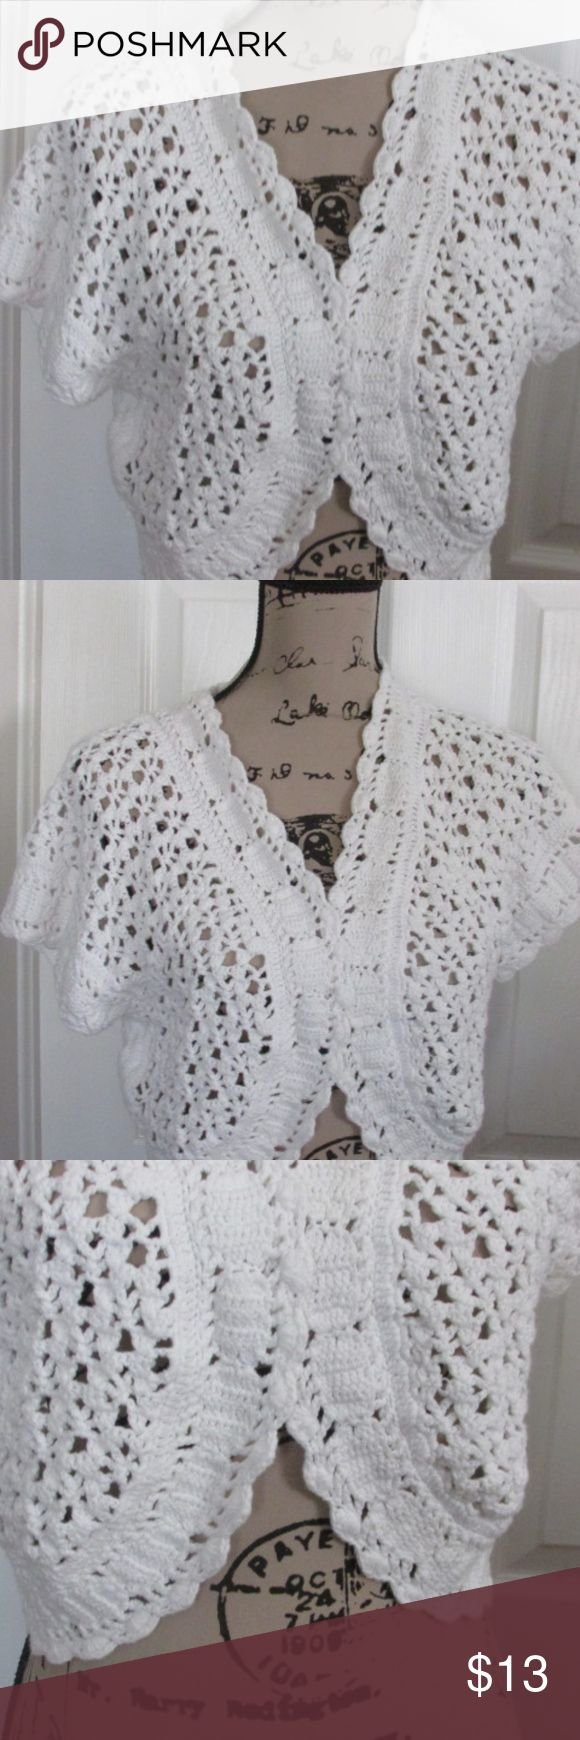 ladies white shrug/sweater xl This is a cute shrug/sweater from Cato. It is white and size x-large. Cato Sweaters Shrugs & Ponchos